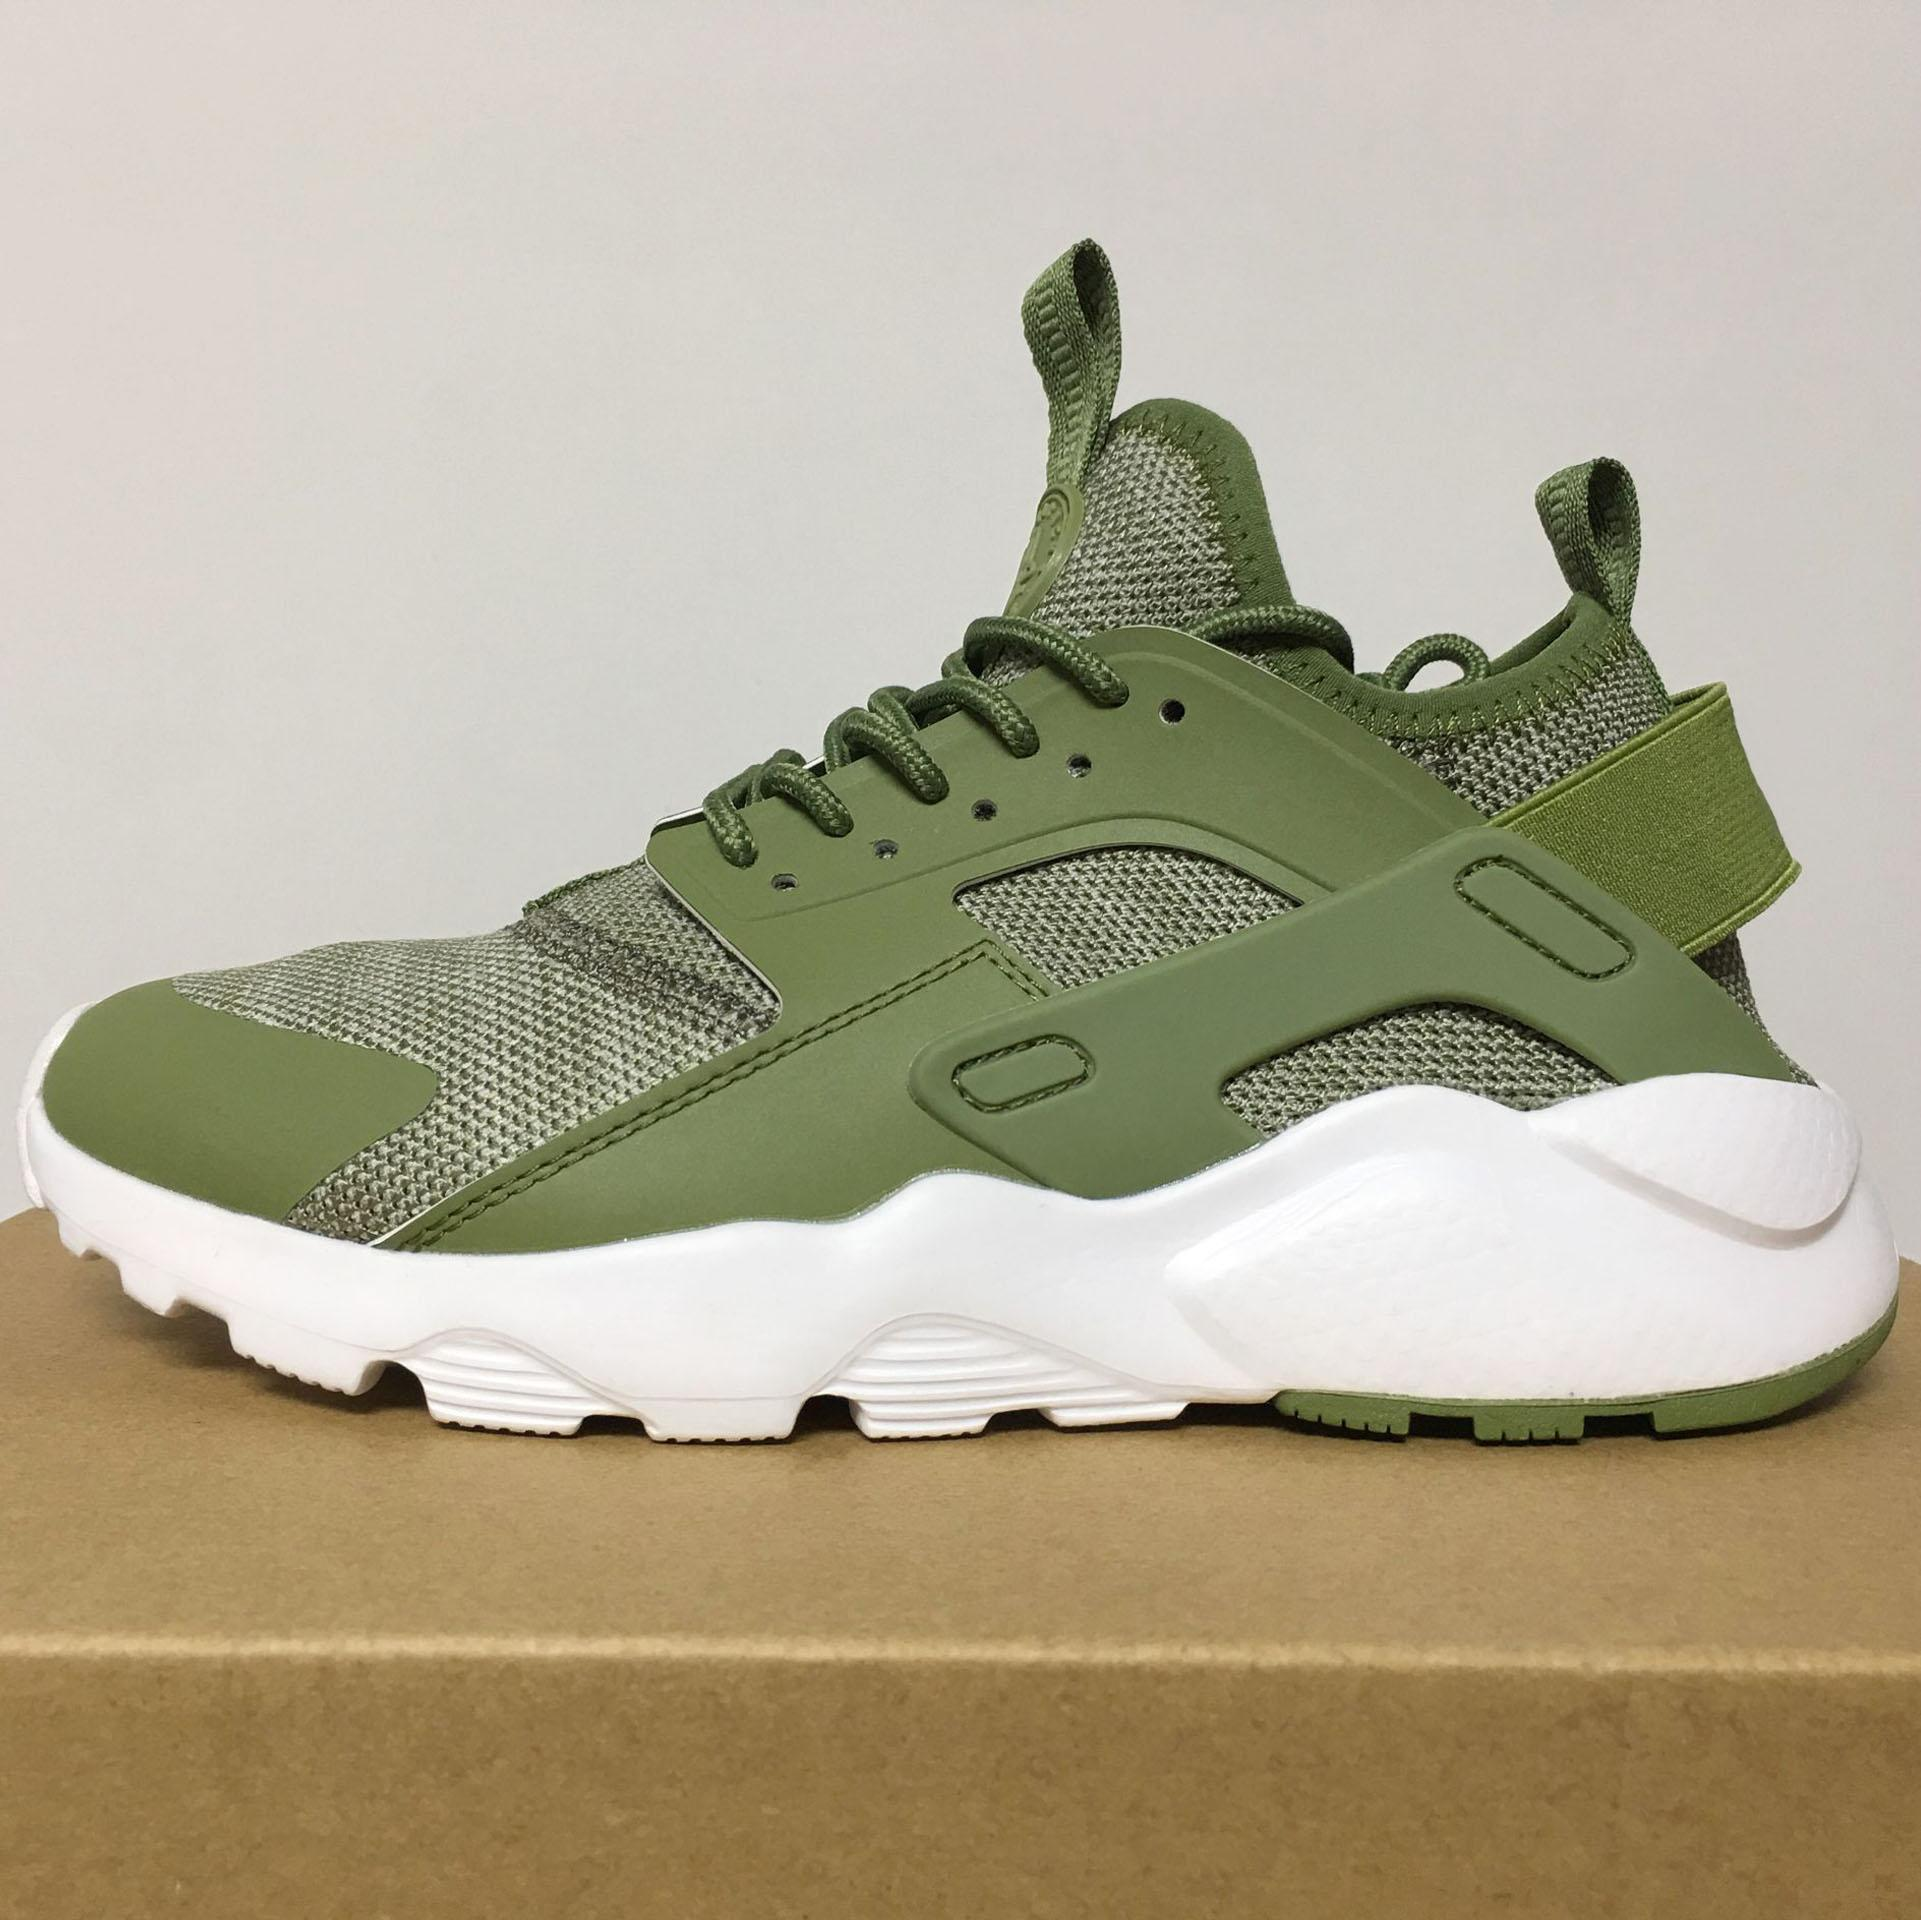 87c9a182966a ... canada air huarache ultra running shoes triple white black huraches  running trainers for men women outdoors